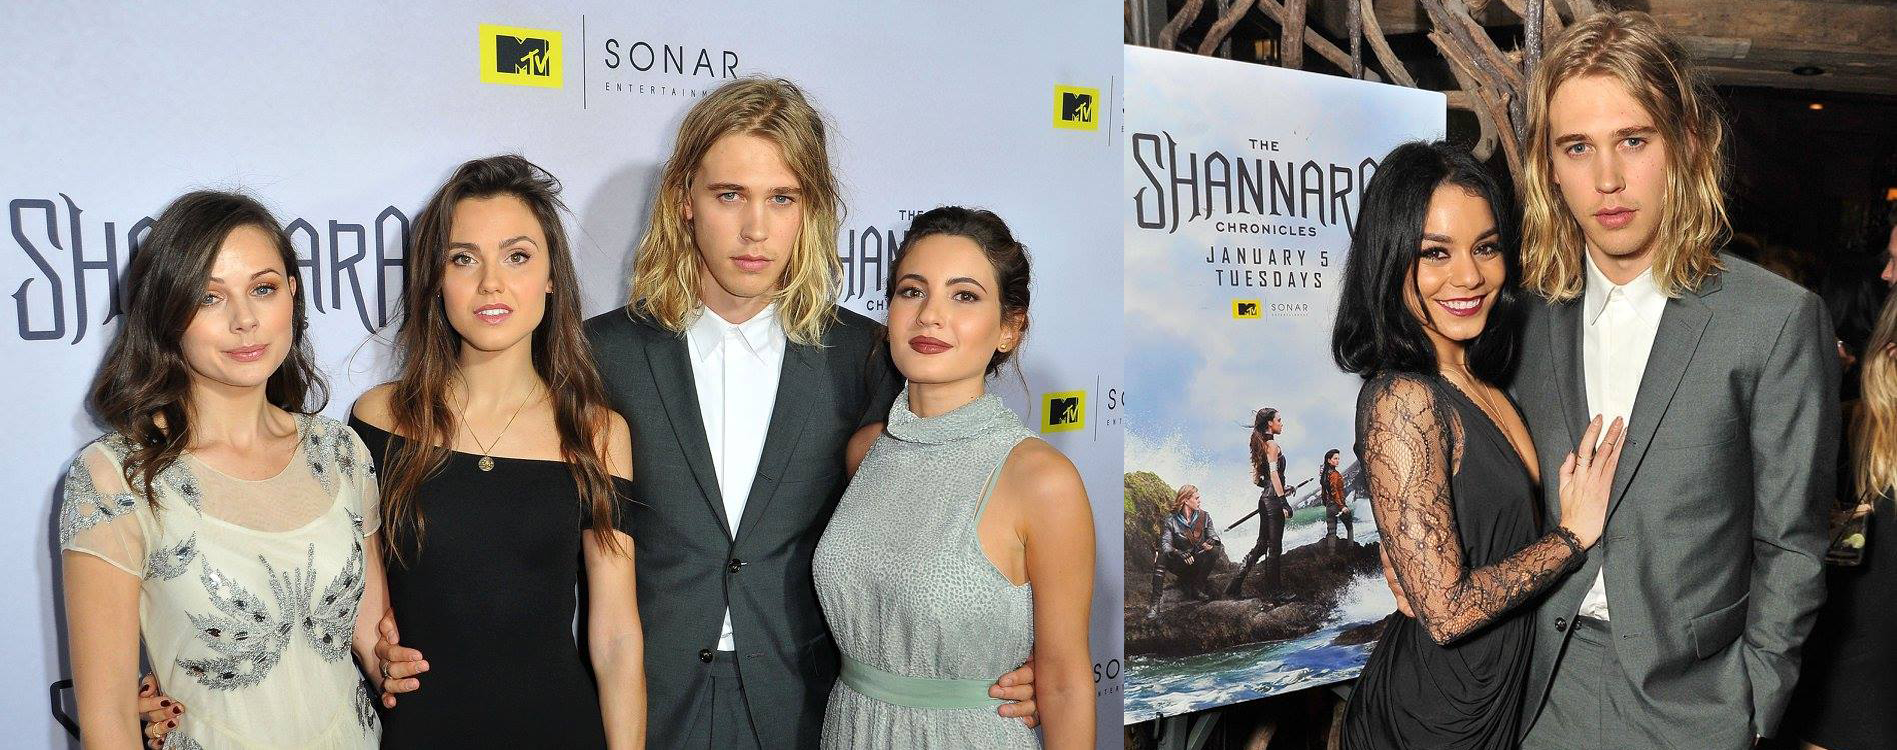 shannara_premiere_photos